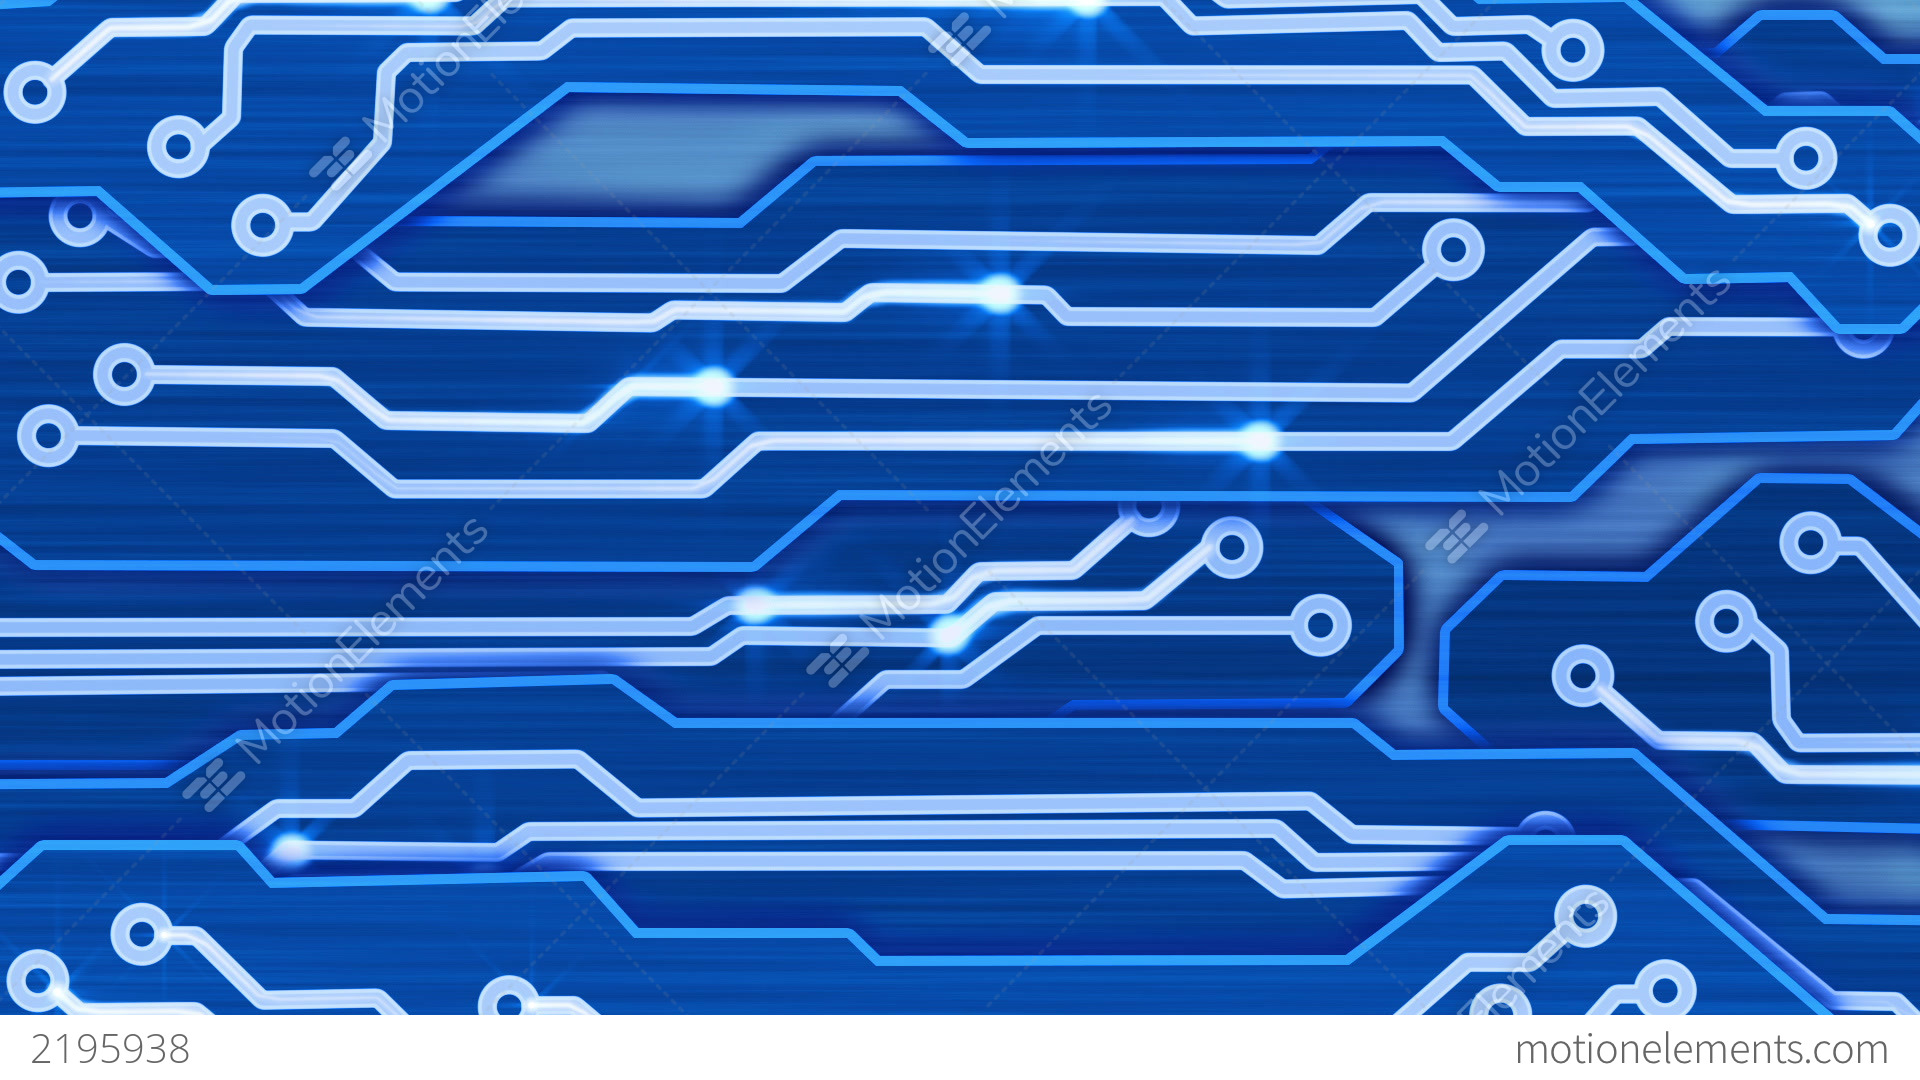 Images Of Blue Electronic Circuits Background Calto Circuit Board Stock Image 31188634 Plates Loop Animation 2195938